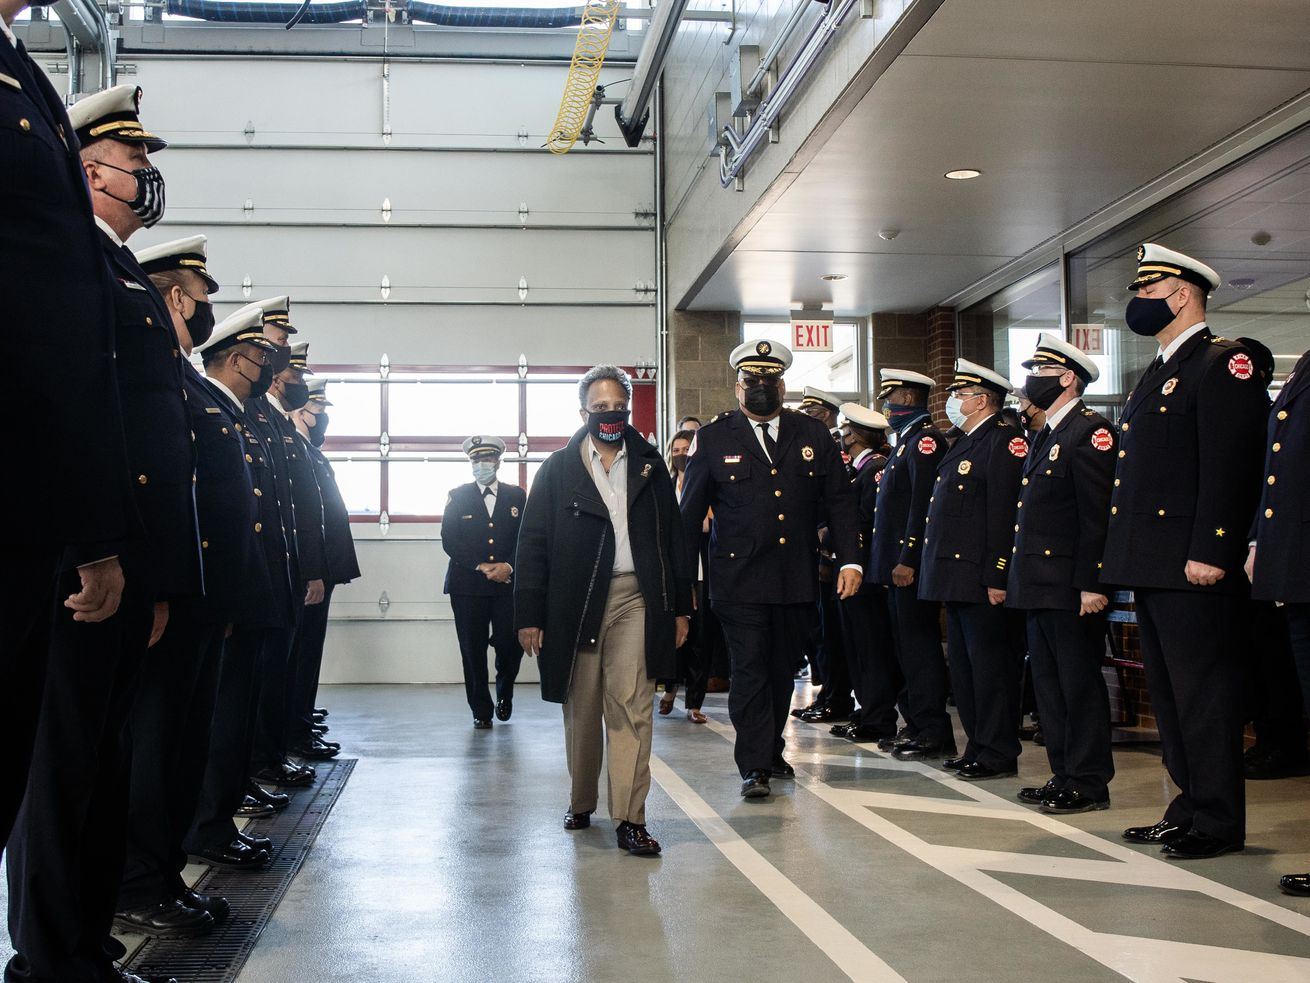 Mayor Lori Lightfoot, surrounded by members of the Chicago Fire Department, walks to a press conference and ribbon cutting ceremony for Engine Company 115's new firehouse at 1024 W. 119th St. in the West Pullman neighborhood, Wednesday morning, March 31, 2021.